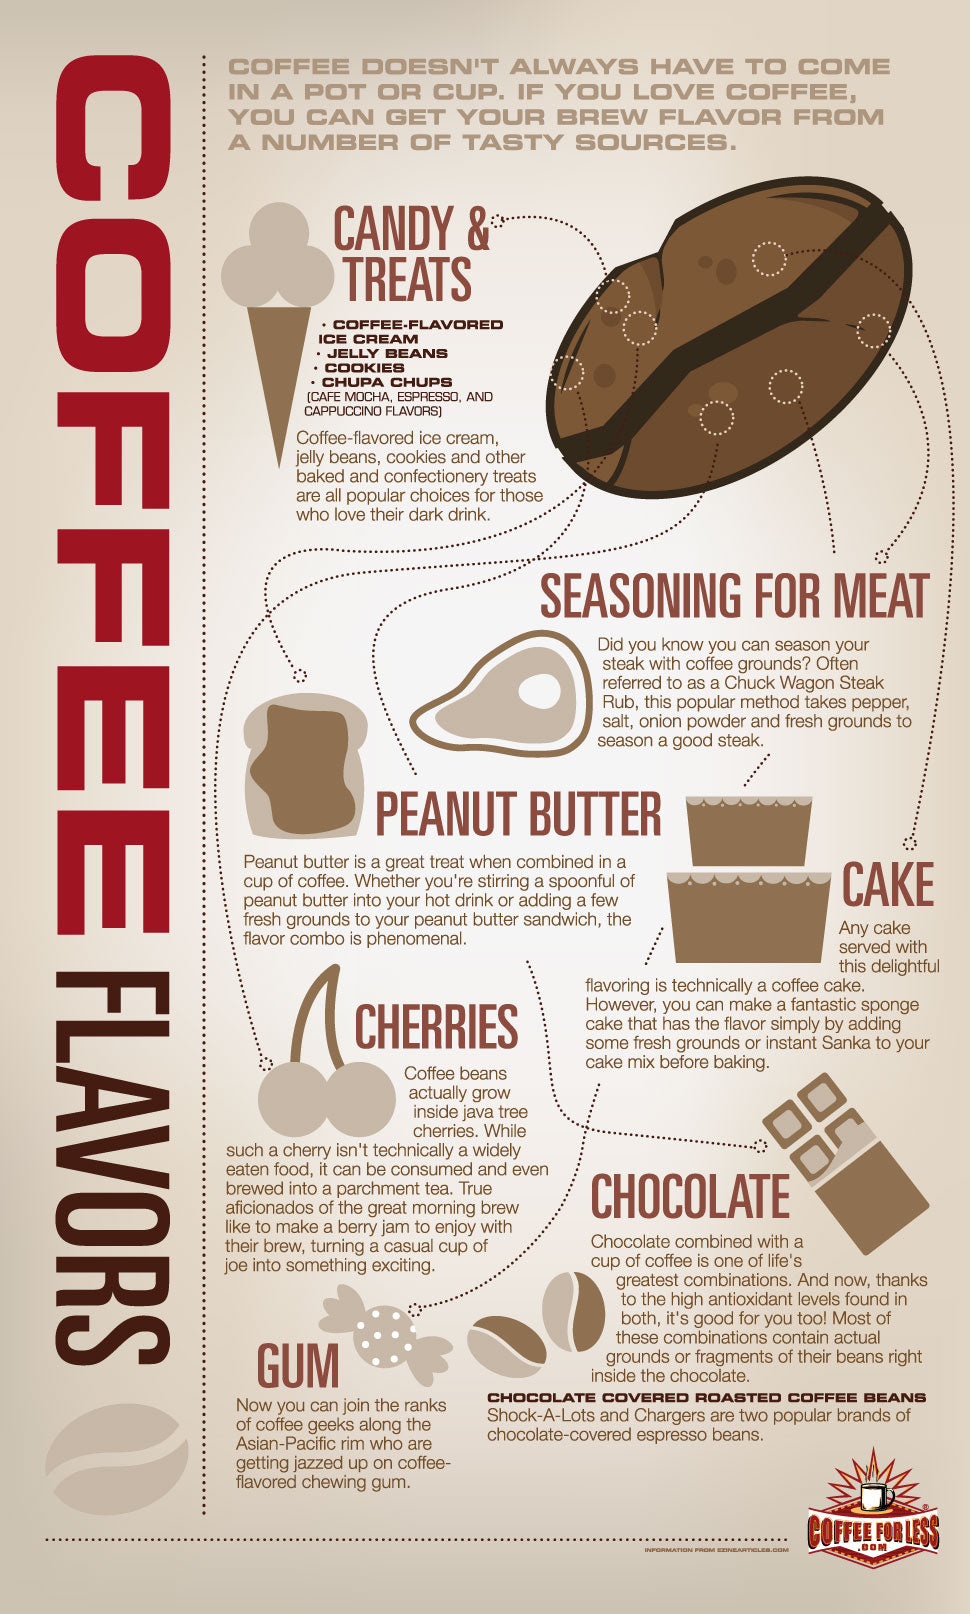 There are many ways to enjoy the unique taste and aroma of Coffee.